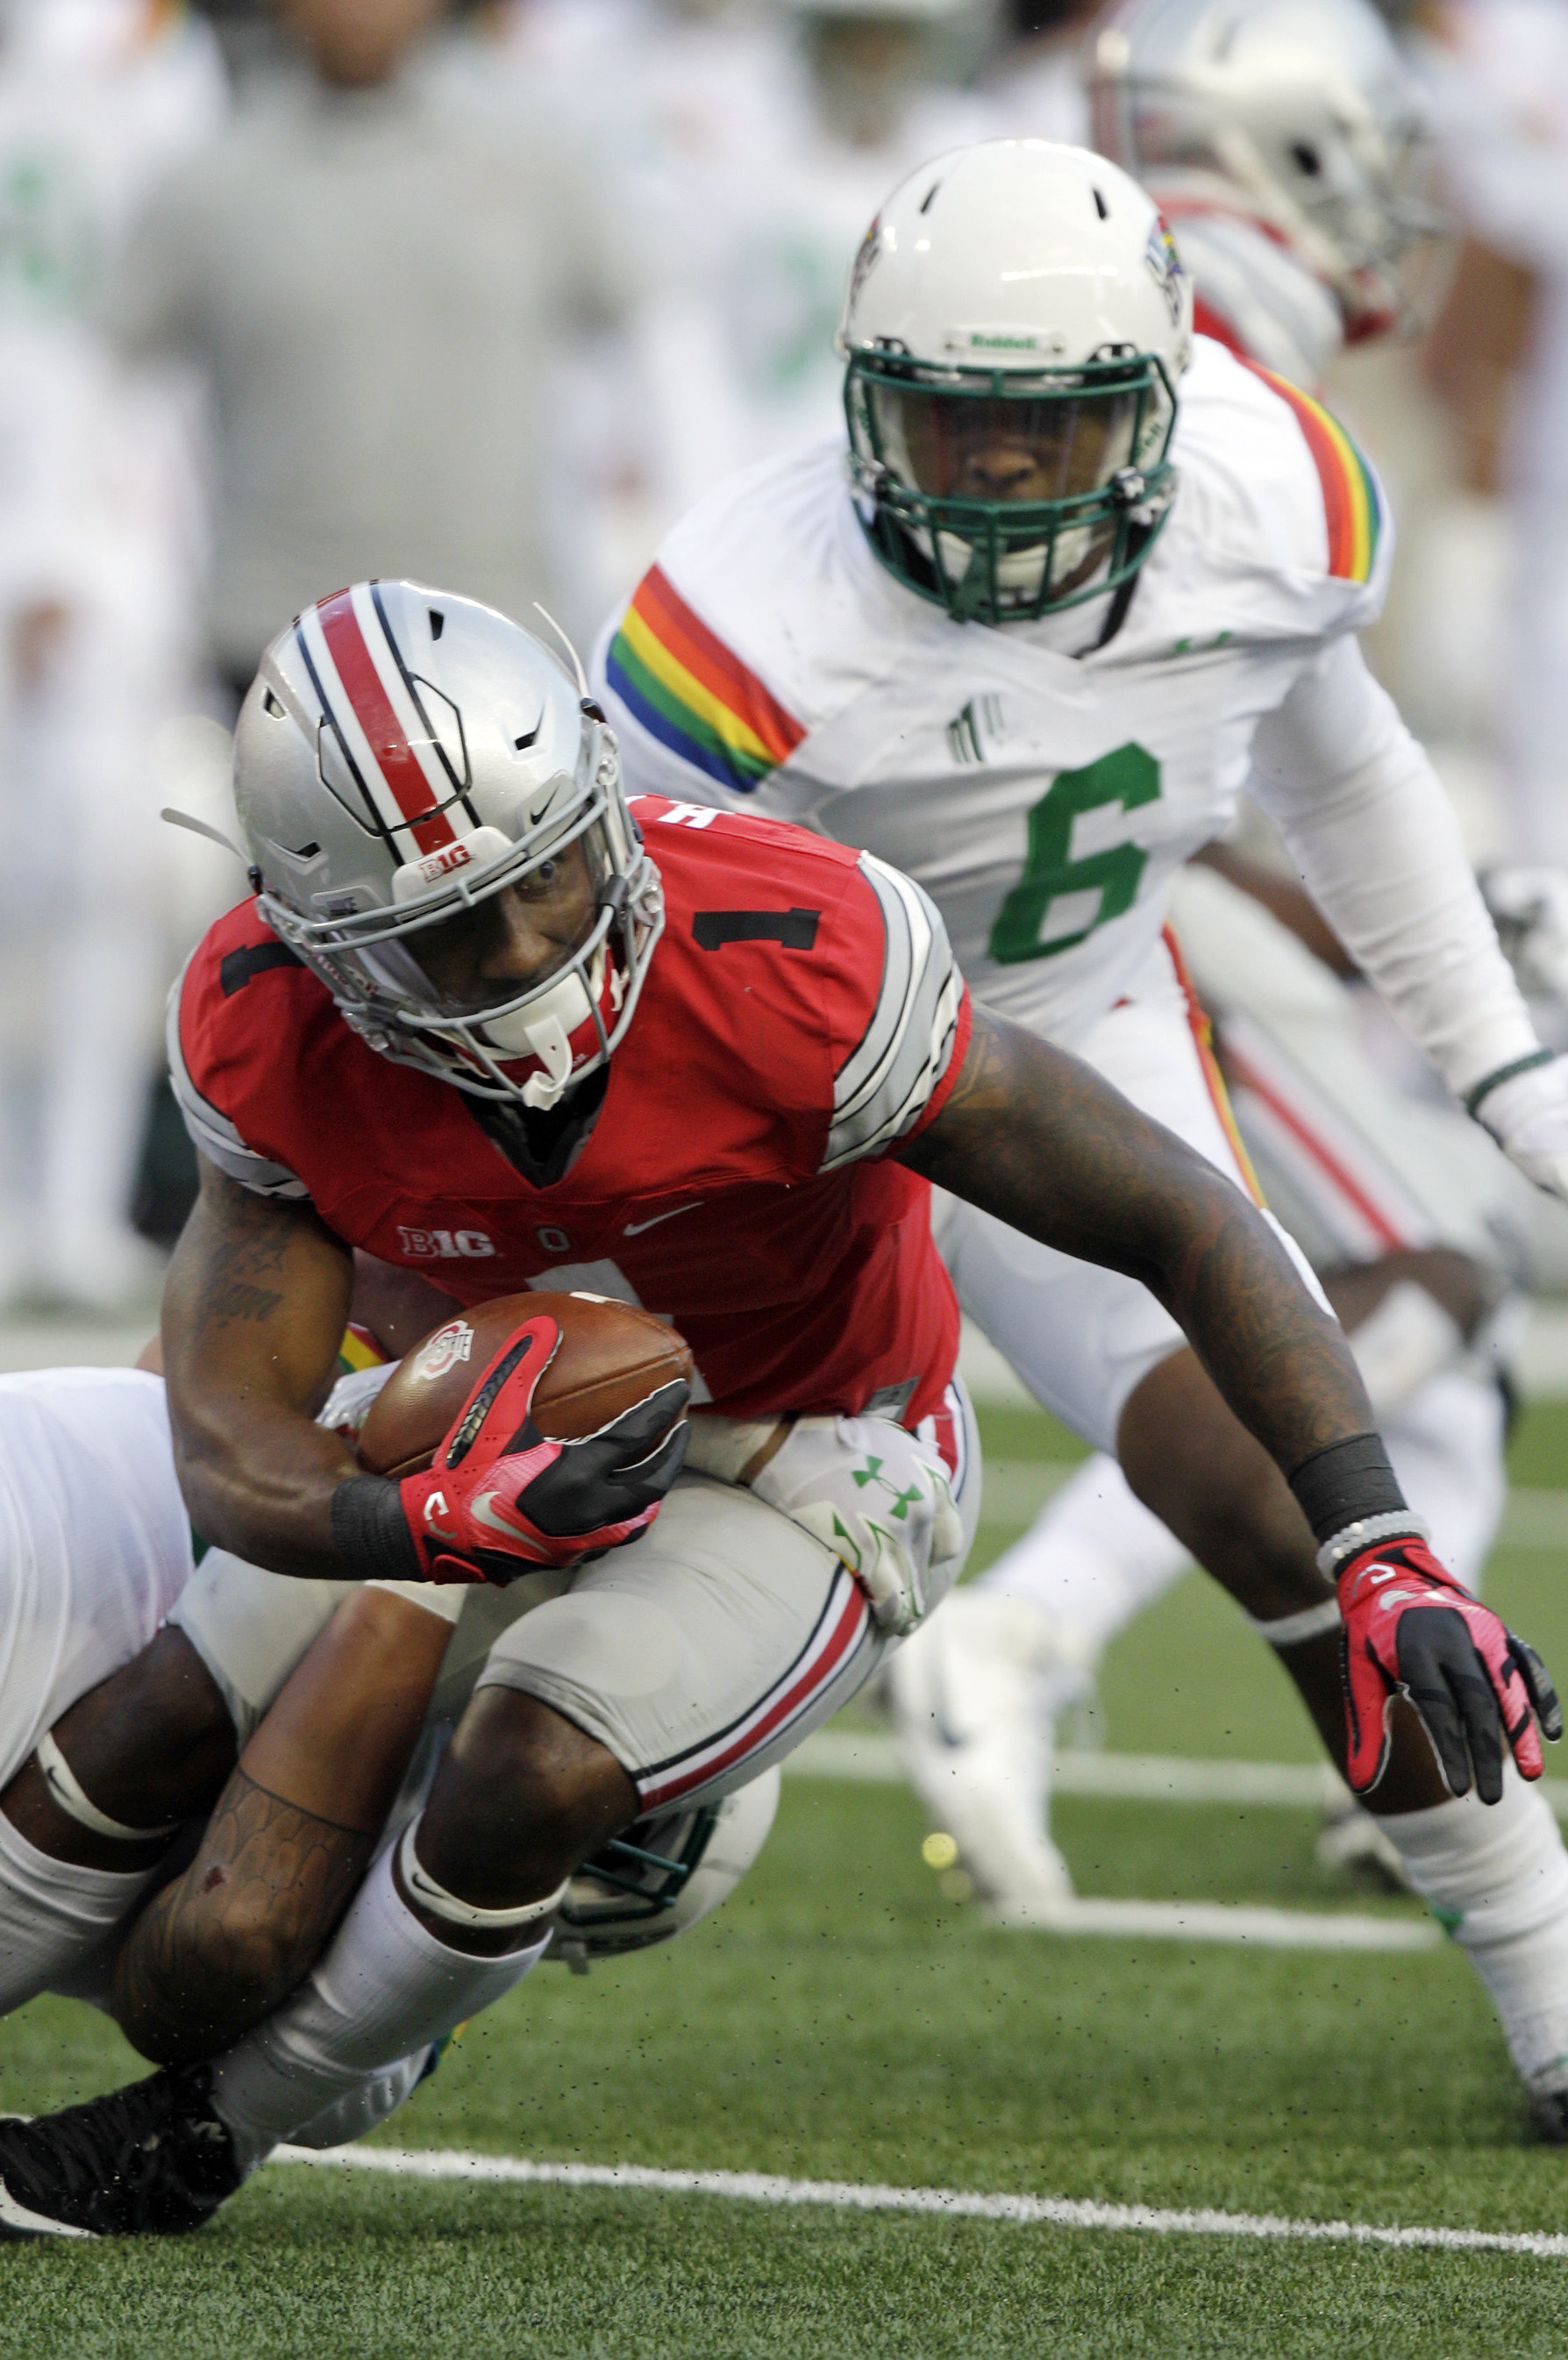 FILE - In this Saturday, Sept. 12, 2015, file photo, Ohio State receiver Braxton Miller carries the ball against Hawaii during an NCAA college football game in Columbus, Ohio. Ohio State coach Urban Meyer devised an offense in which some receivers are not